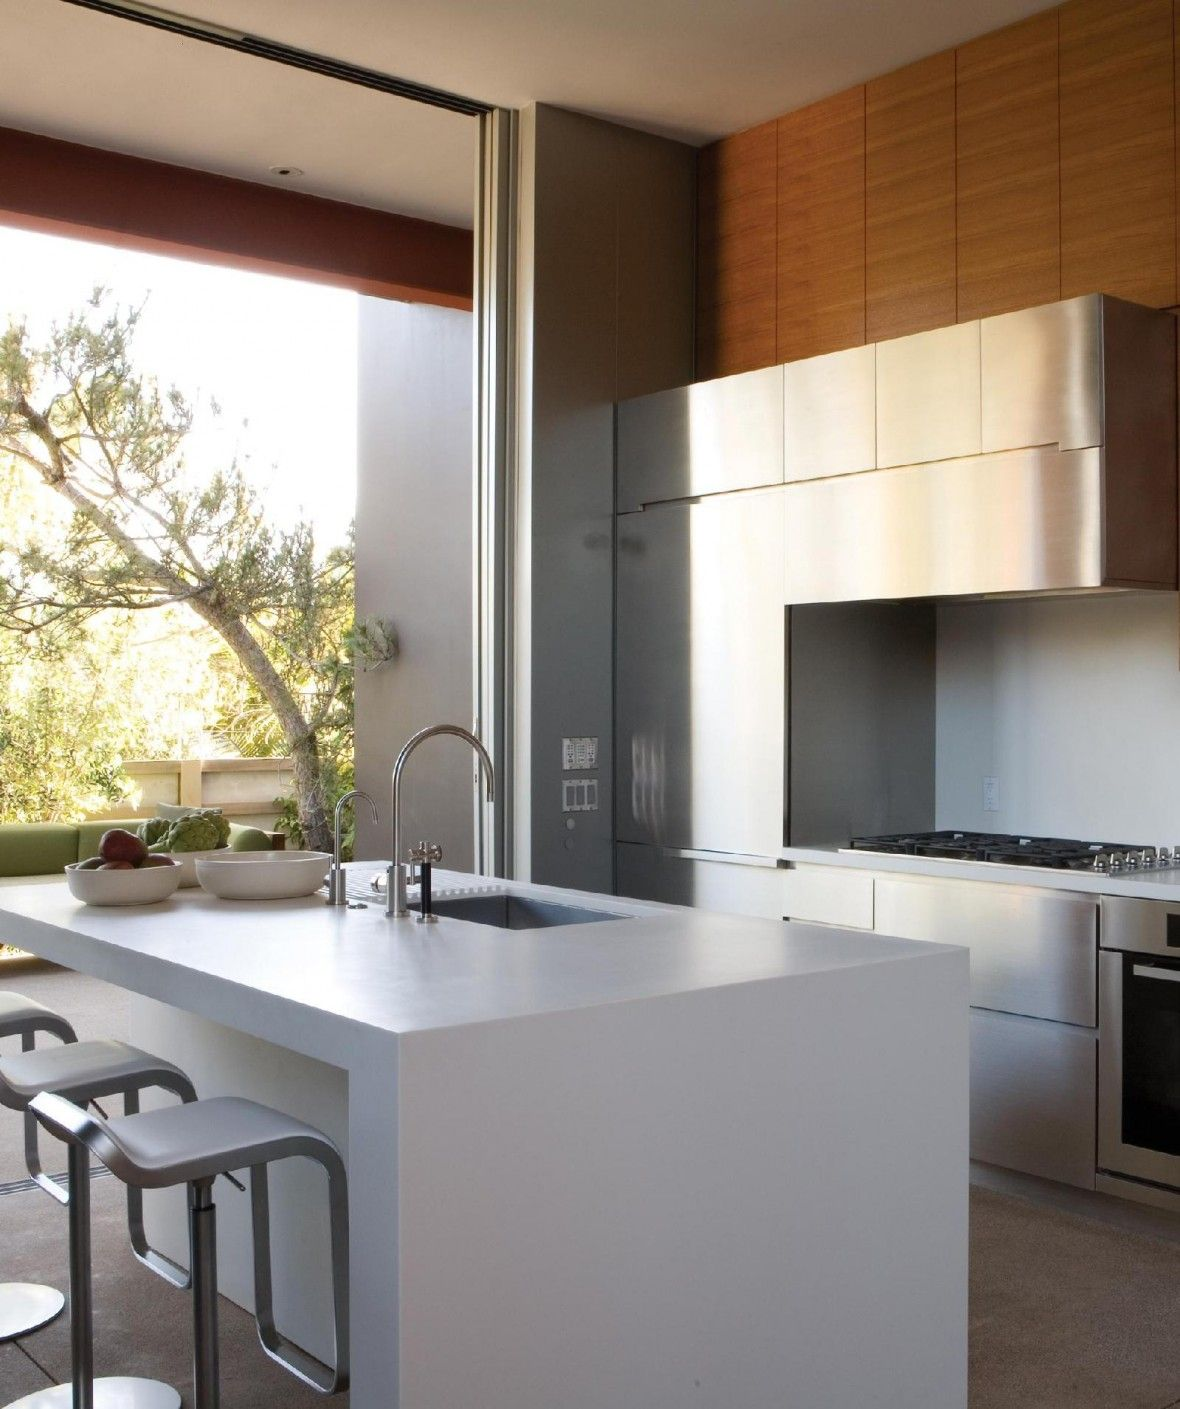 Beau Useful Tricks To Maximize The Space Of Your Small Kitchen   Interior Design    Reducing The Appliances And Utensils Used In Your Kitchen And Increasing  The ...